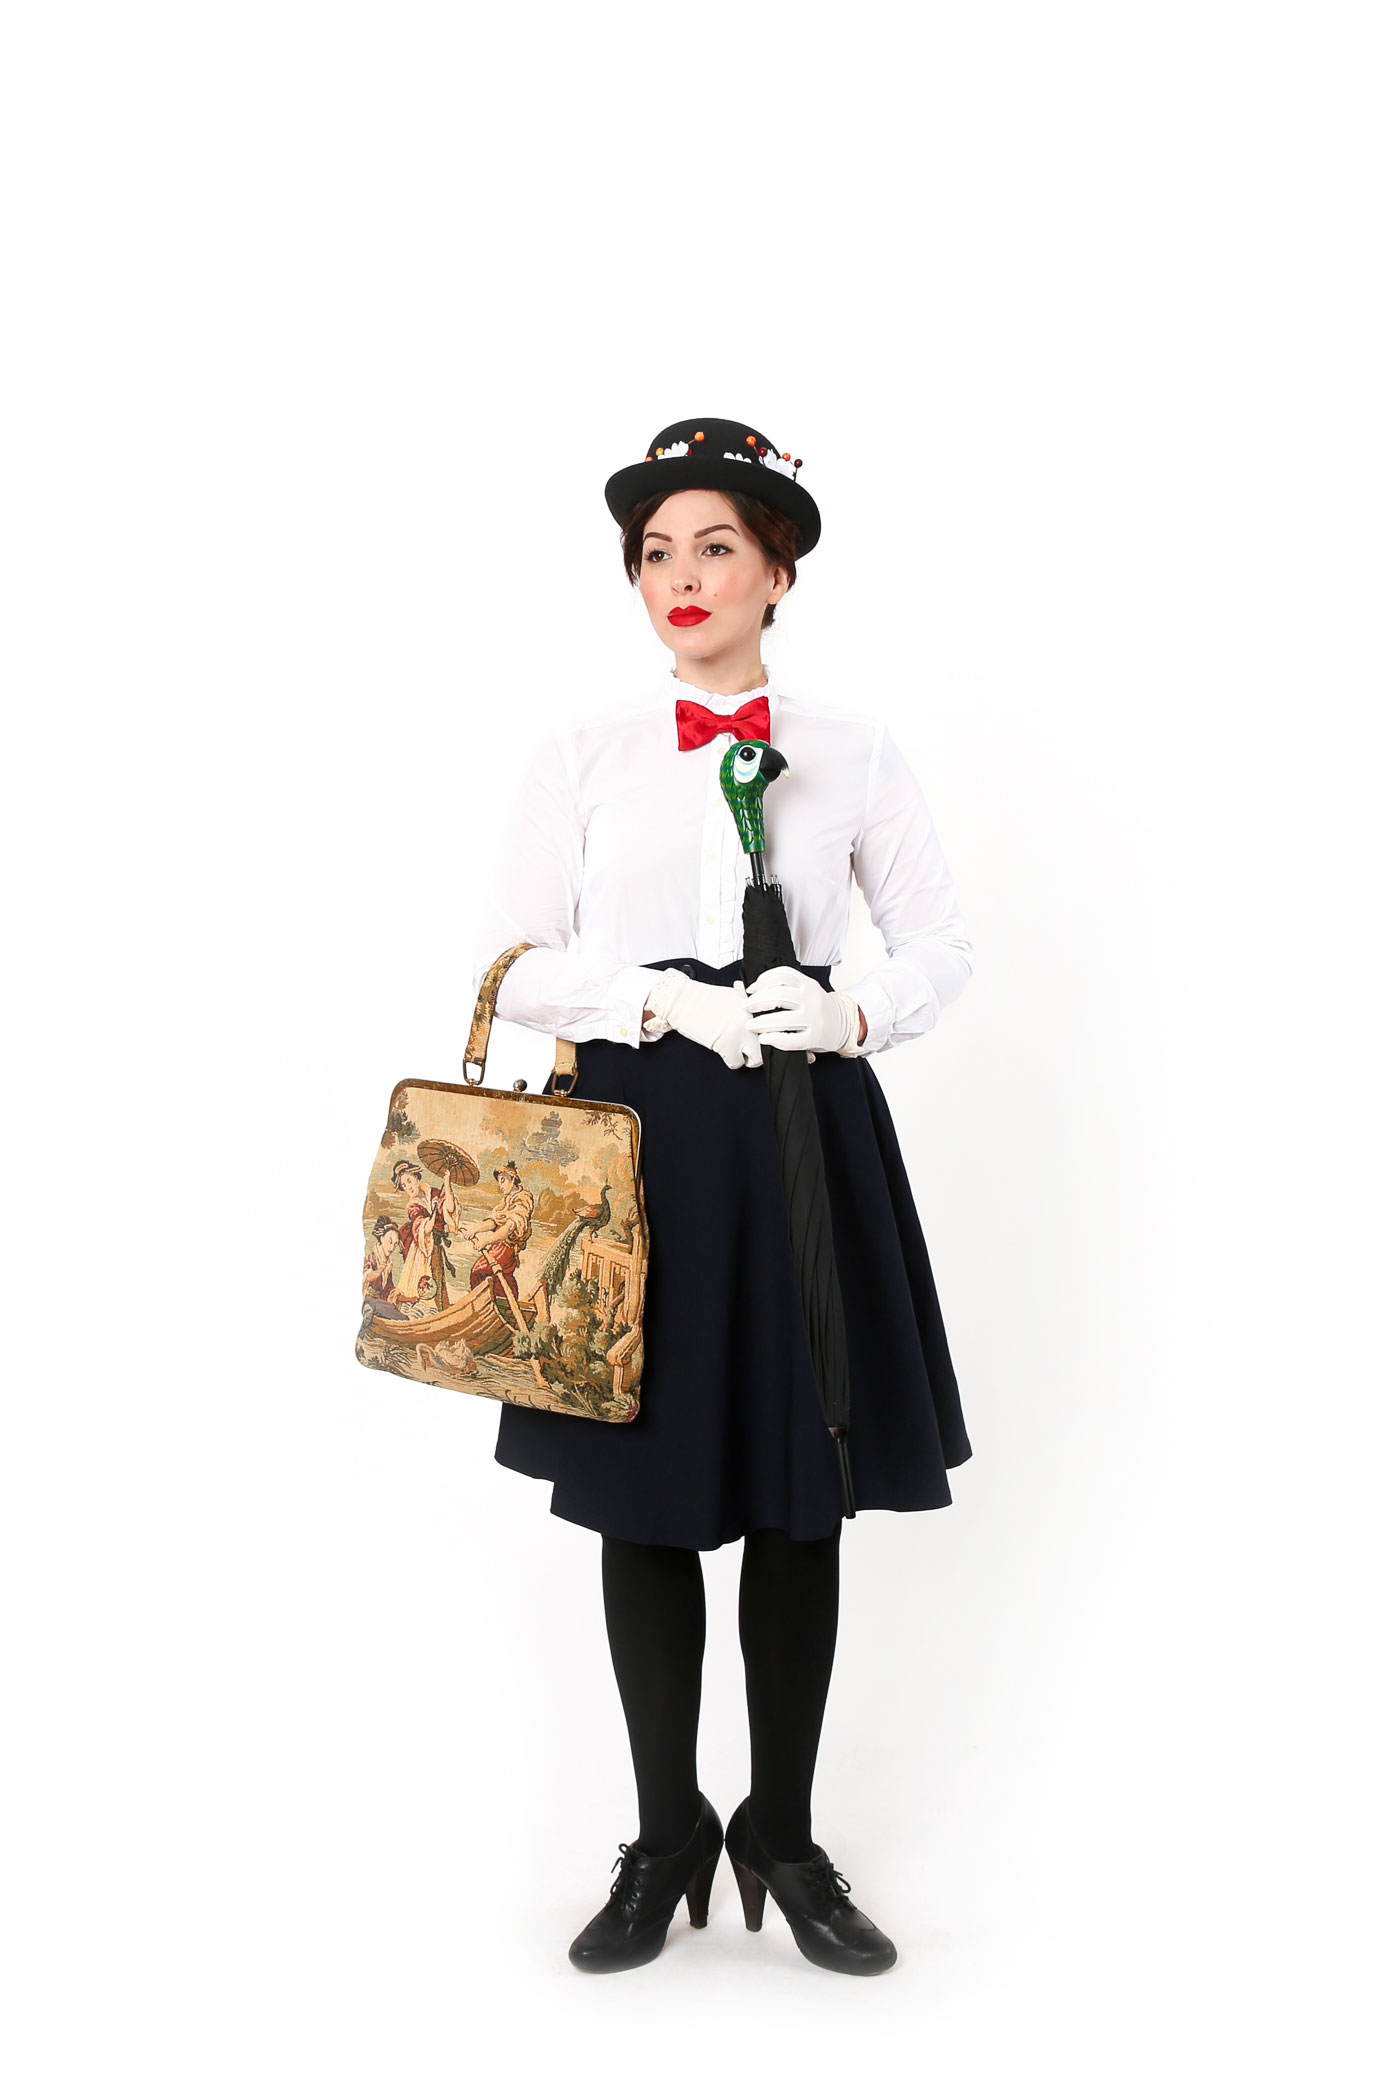 I found great Halloween costume ideas on rallfund.cf With the Mary Poppins Adult Costume, Costume Express helps create memories that last a lifetime - click here to start the fun!